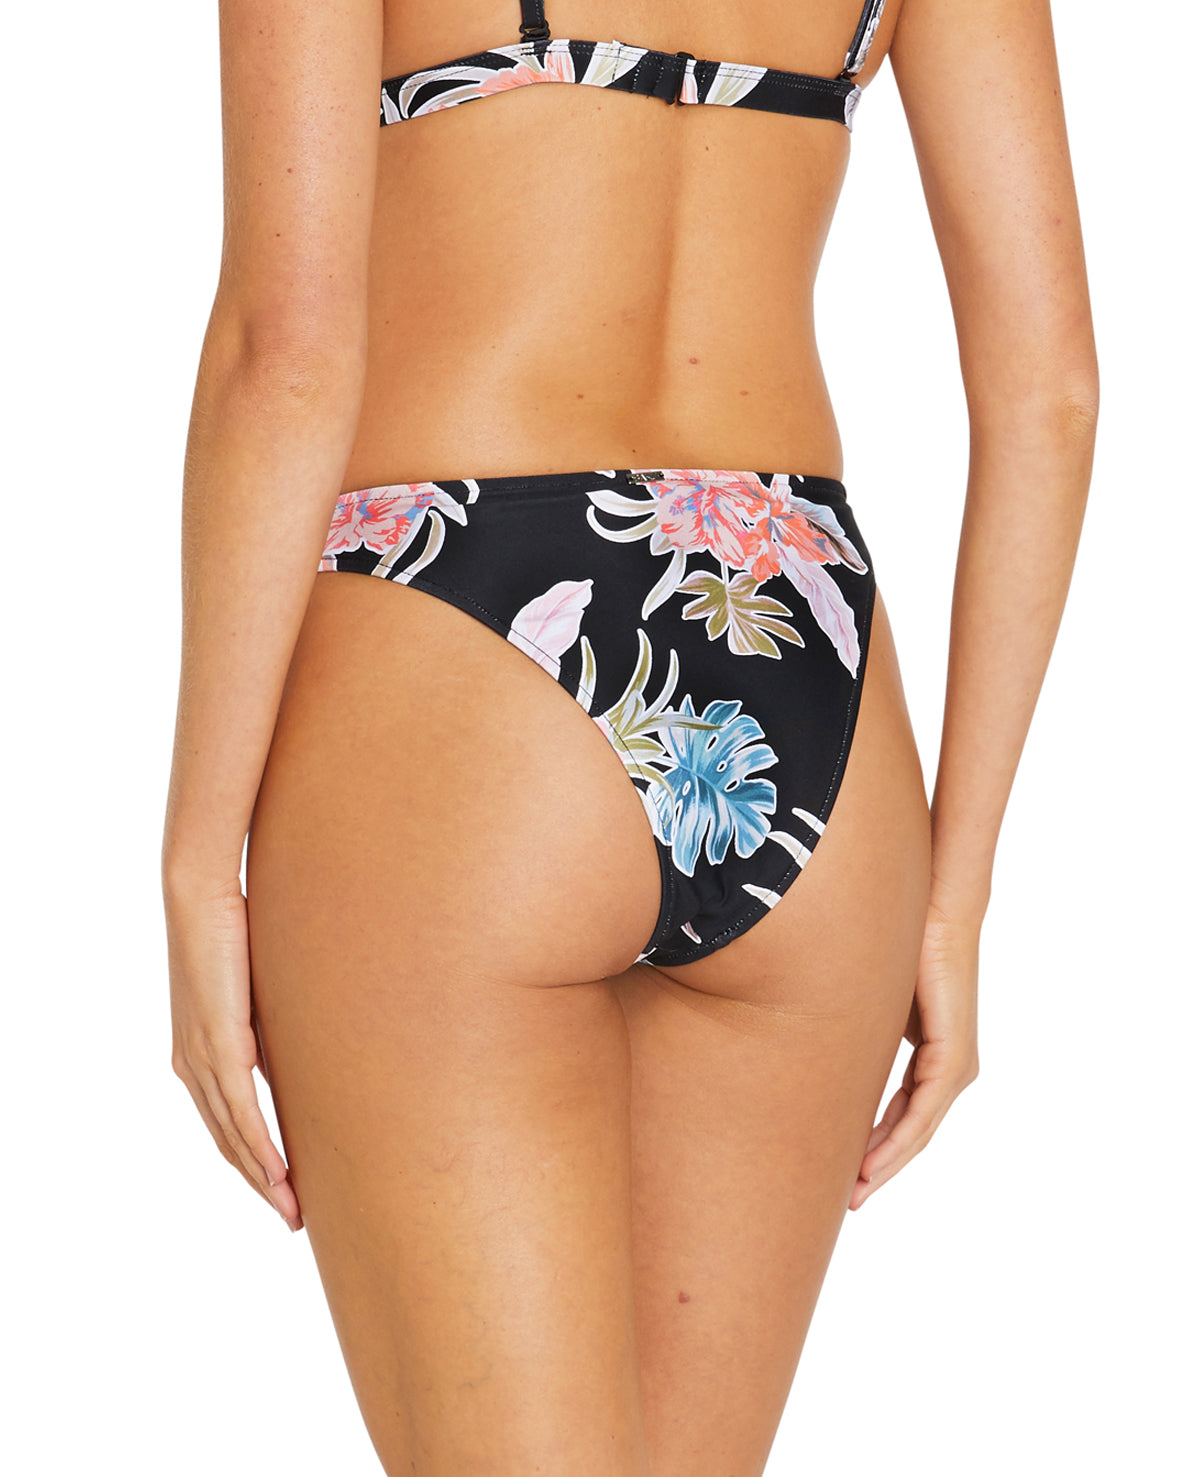 SOUTH PACIFIC REGULAR V-WAIST RIO BIKINI PANT